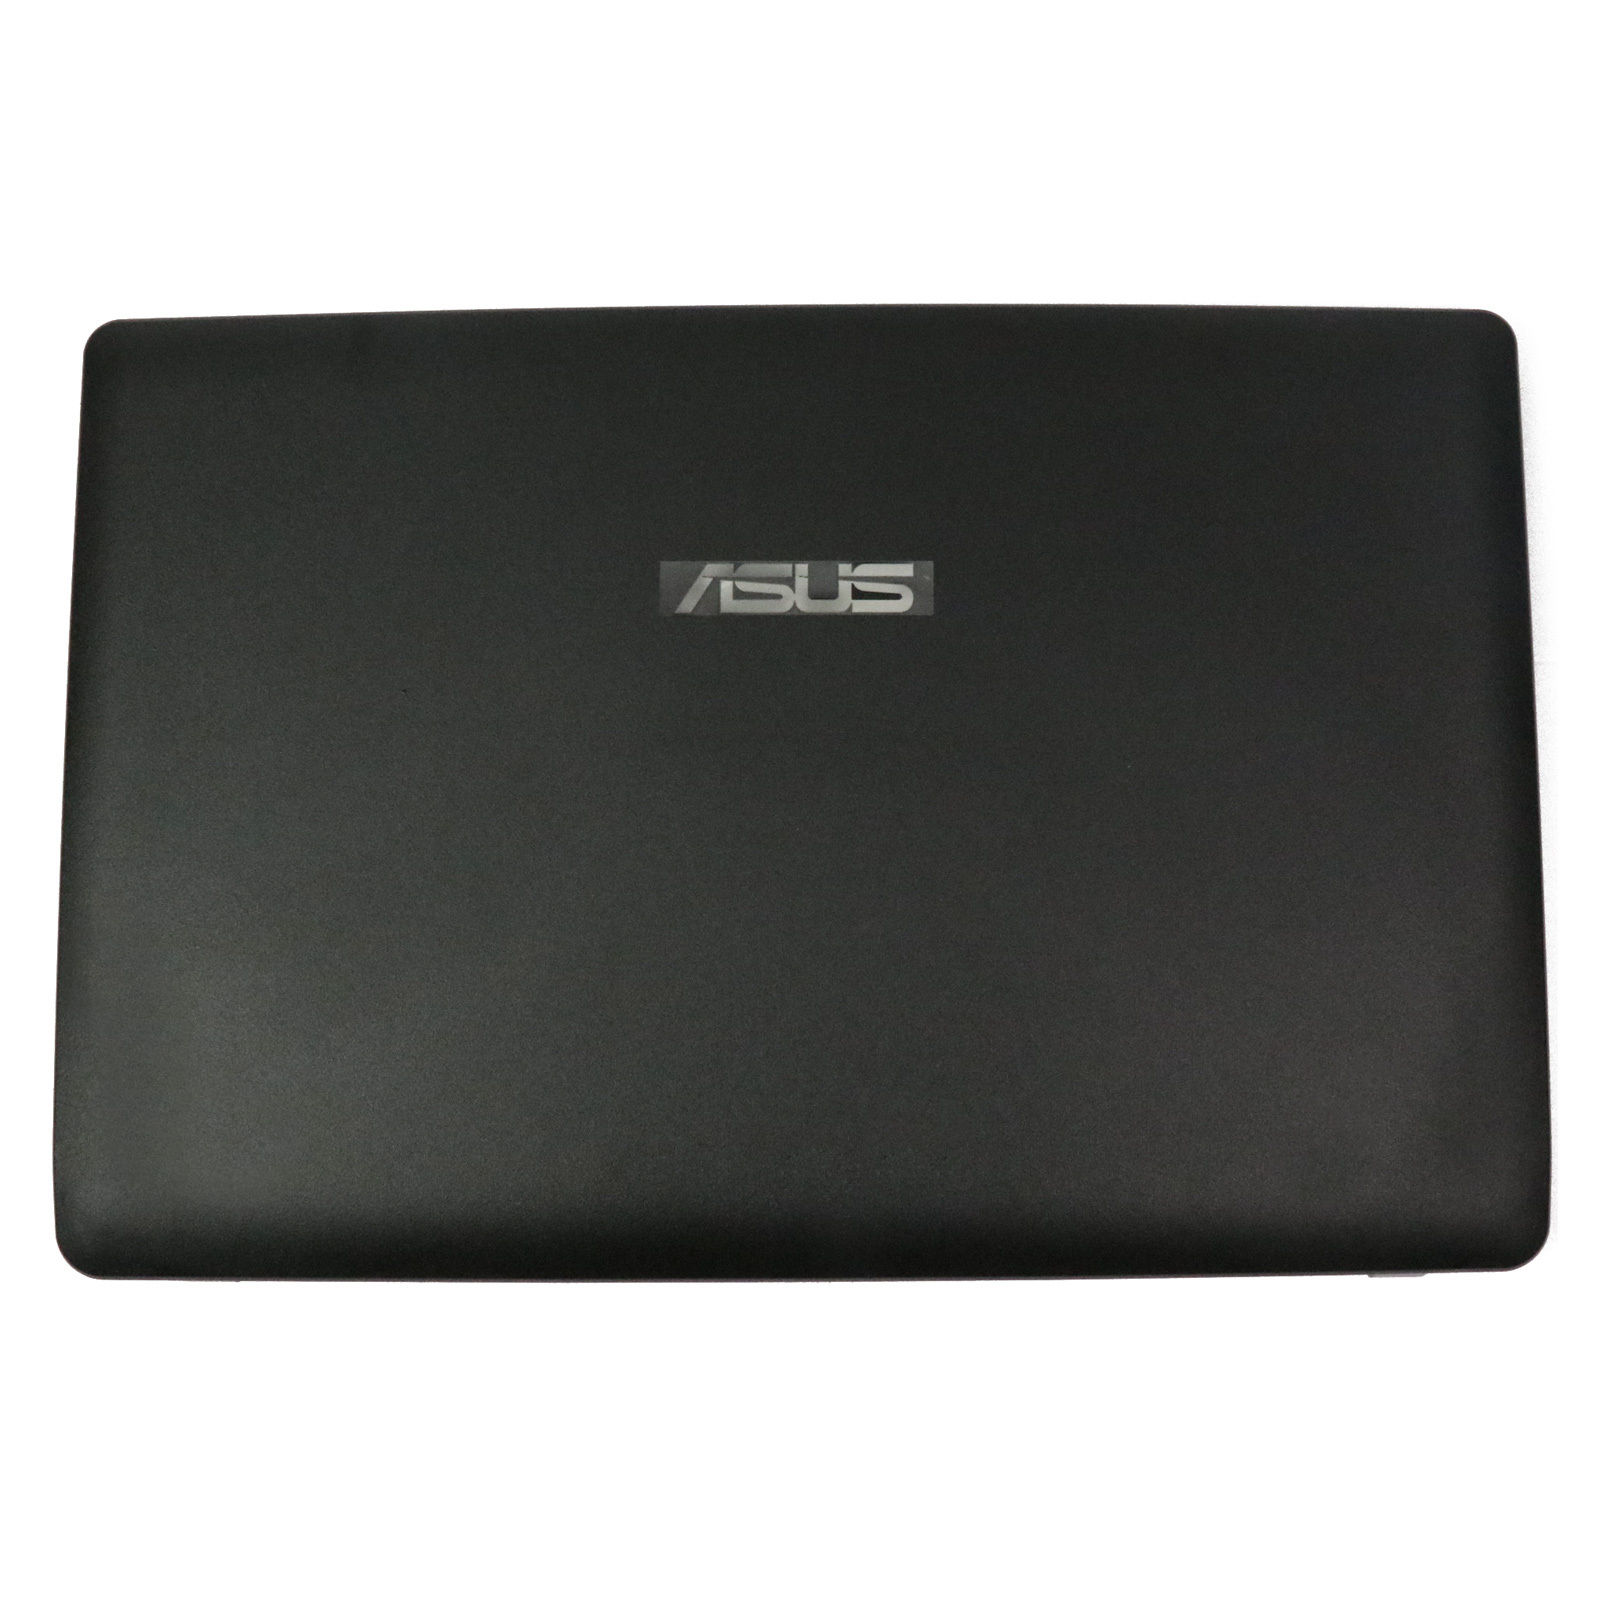 New ASUS K52 A52 X52 K52J K52N K52F K52D K52JR K52JB K52JC A52J A52JR K52JE 13GNXM1AP011 Top LCD Rear Case Back Cover